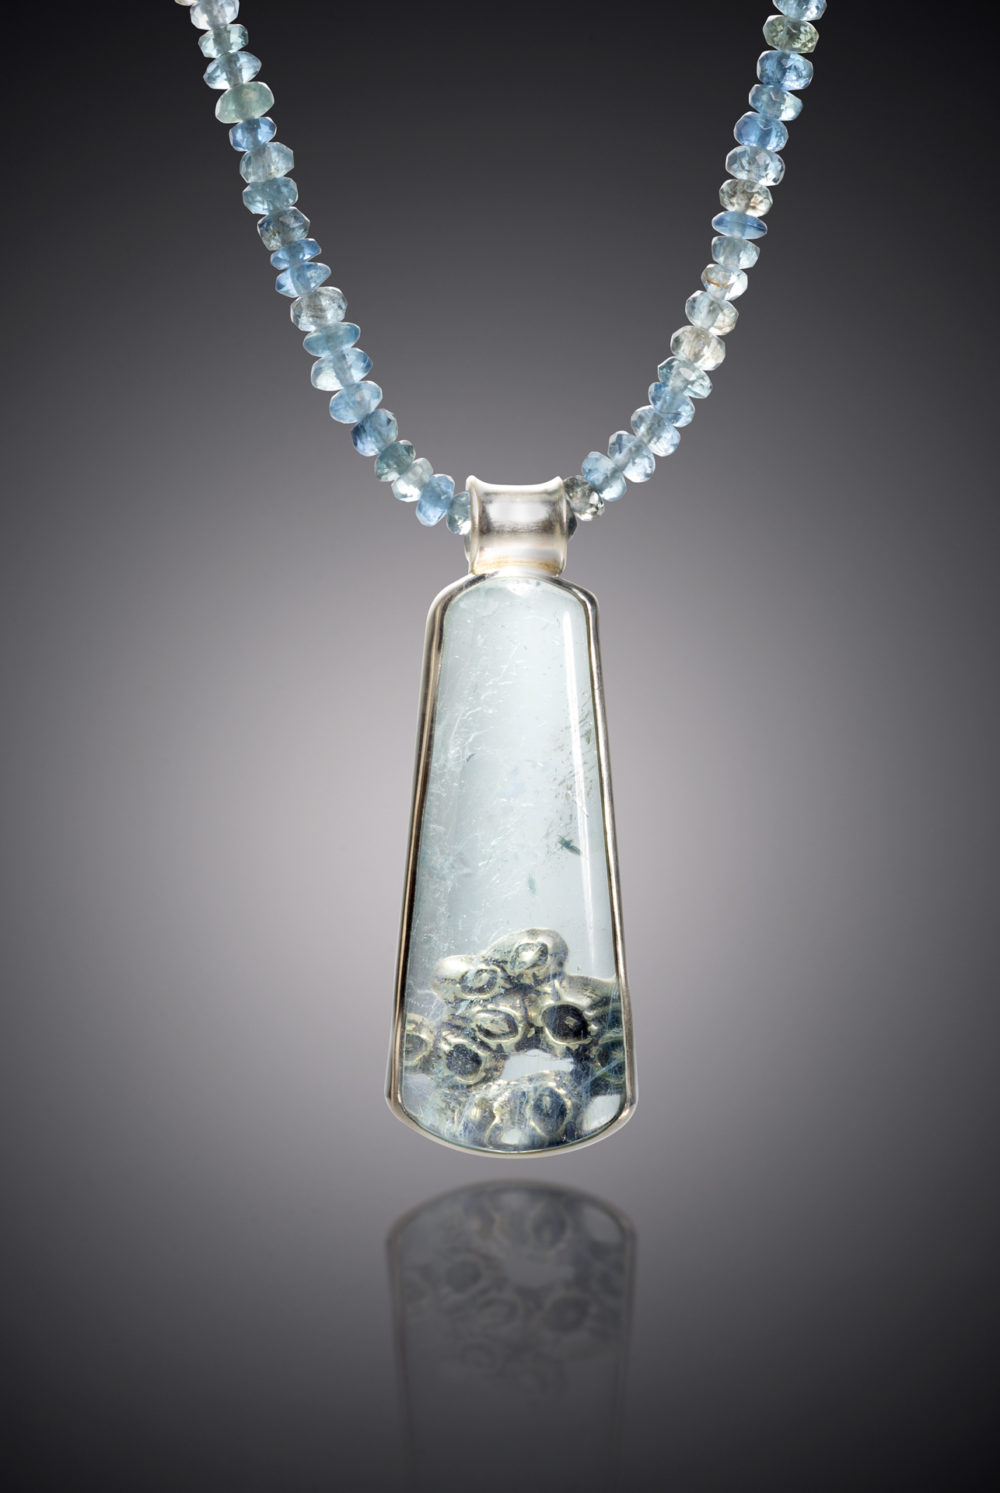 NISA Jewelry Beneath the Surface Aquamarine Necklace detail on gray